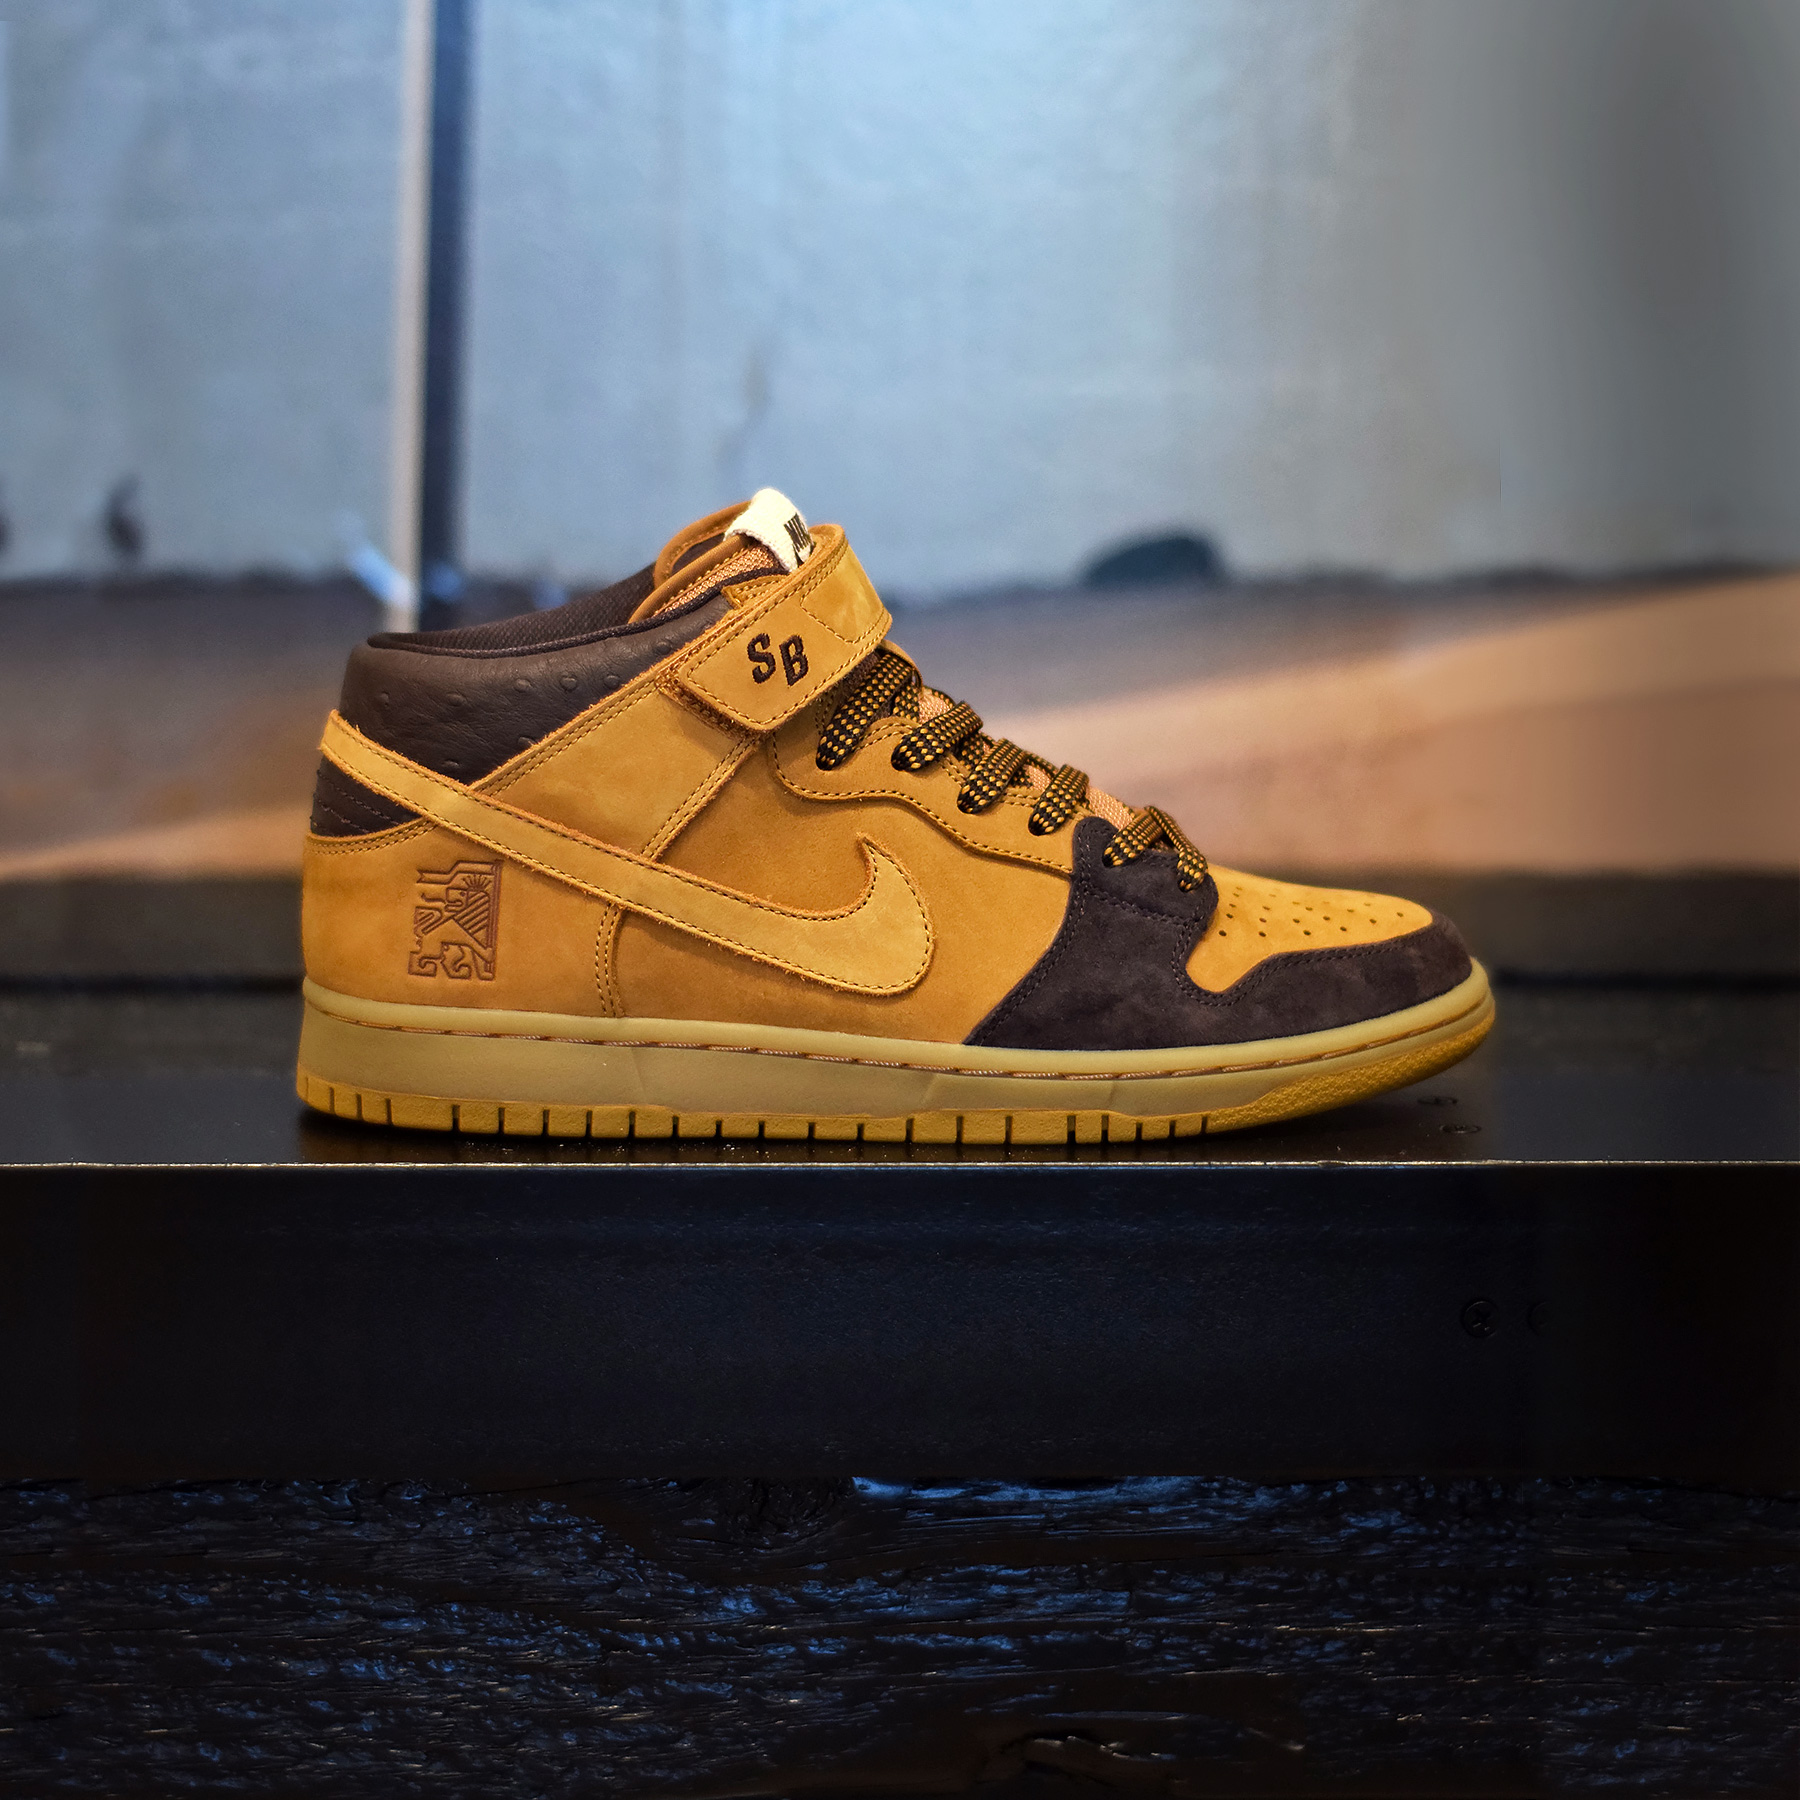 competitive price df380 27d60 Nike SB Dunk Mid Lewis Marnell - Sneakers.fr